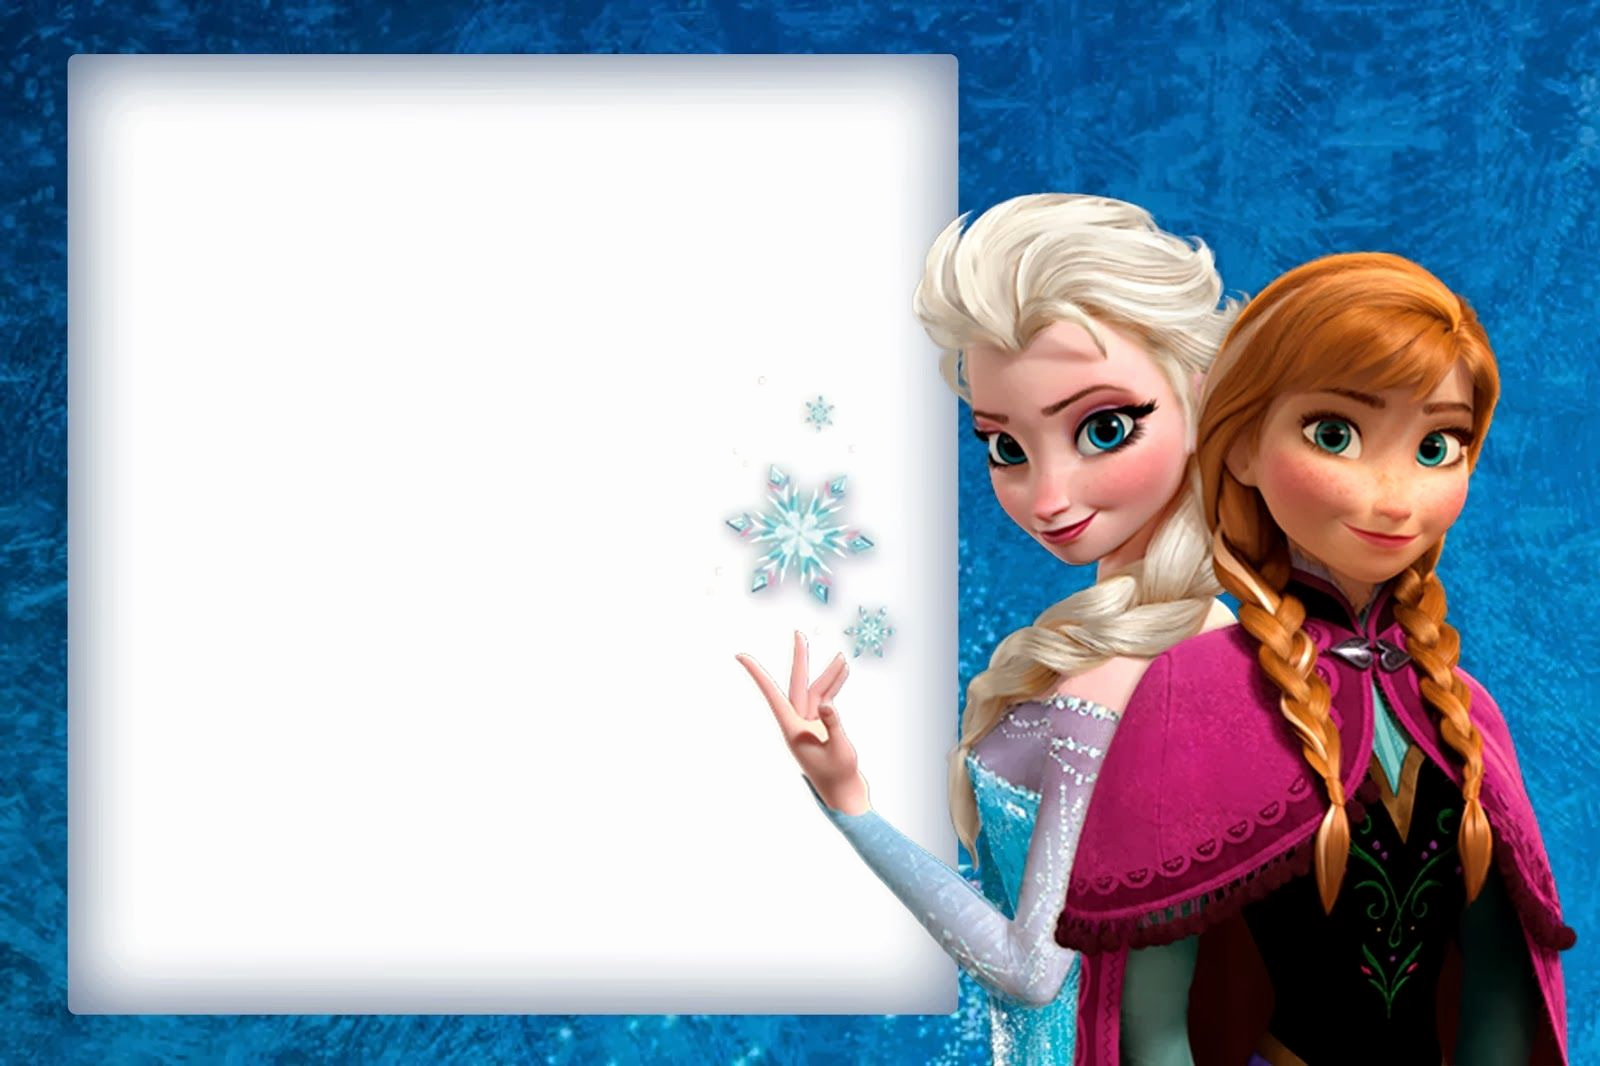 Free Printable Frozen Invitation Templates Lovely Frozen Cute Free Printable Invitations A Few Nice Ones